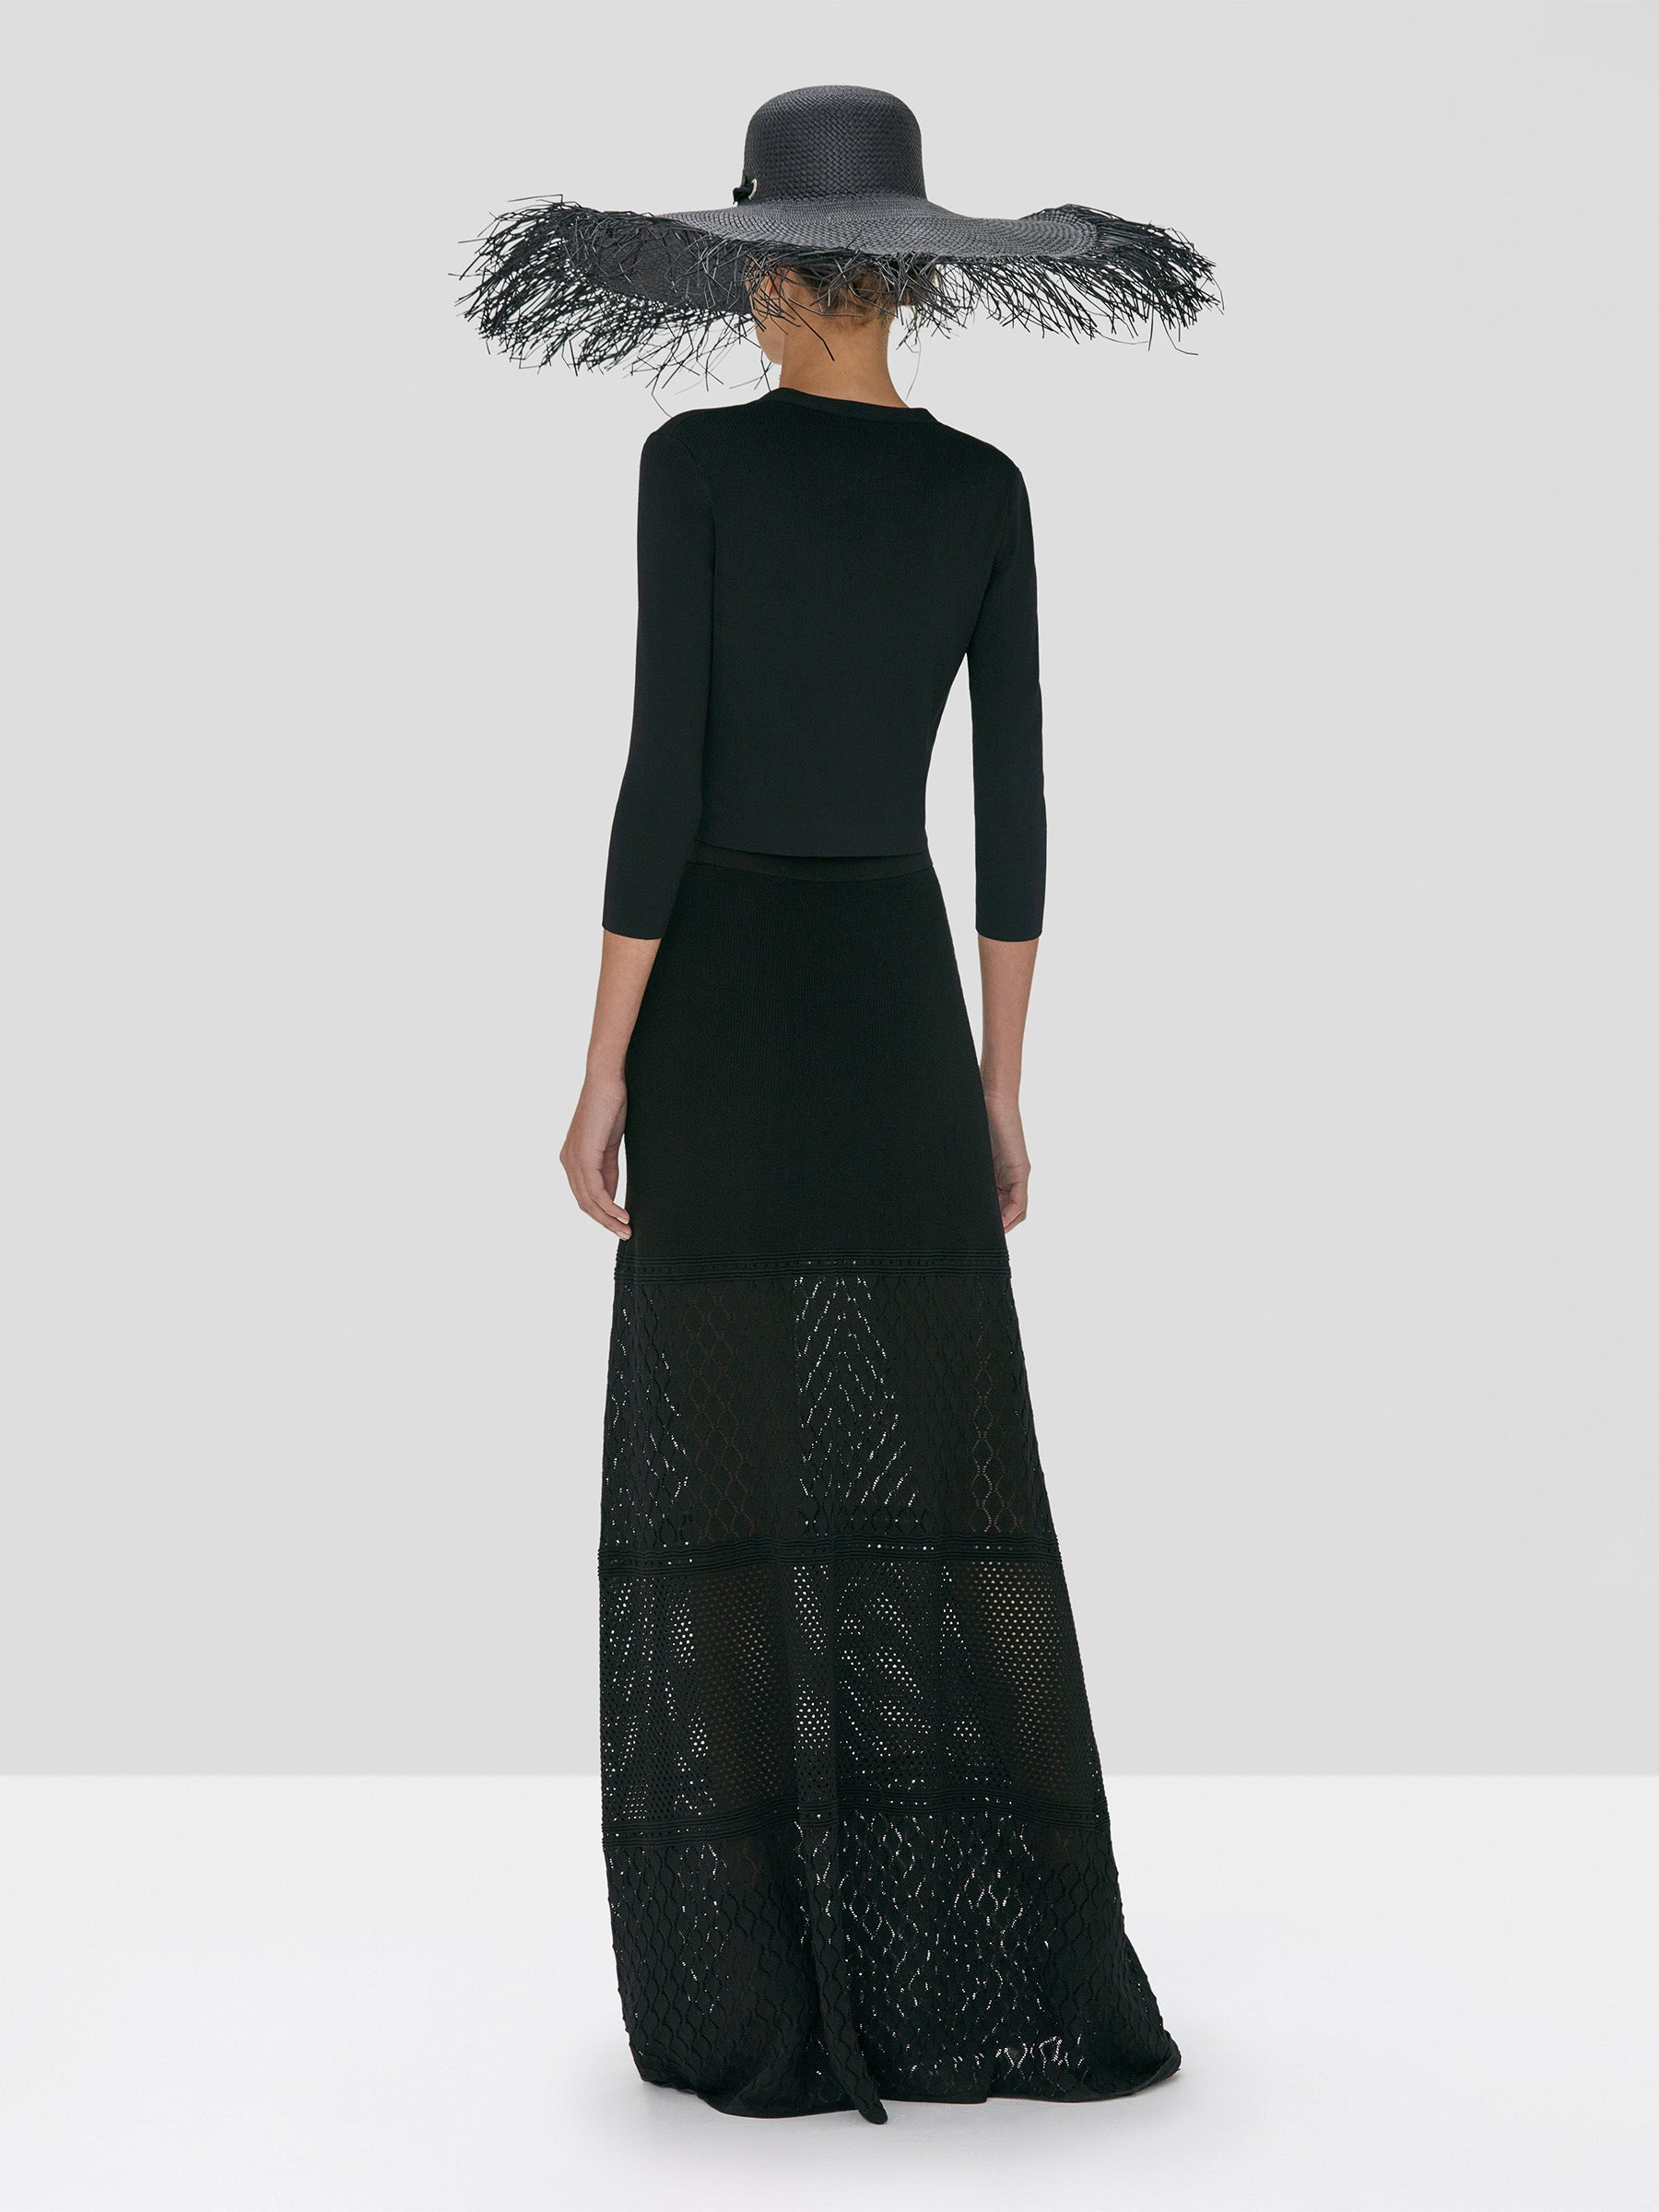 Alexis Petal Cardigan in Black and Ecco Skirt in Black from the Spring Summer 2020 Collection - Rear View